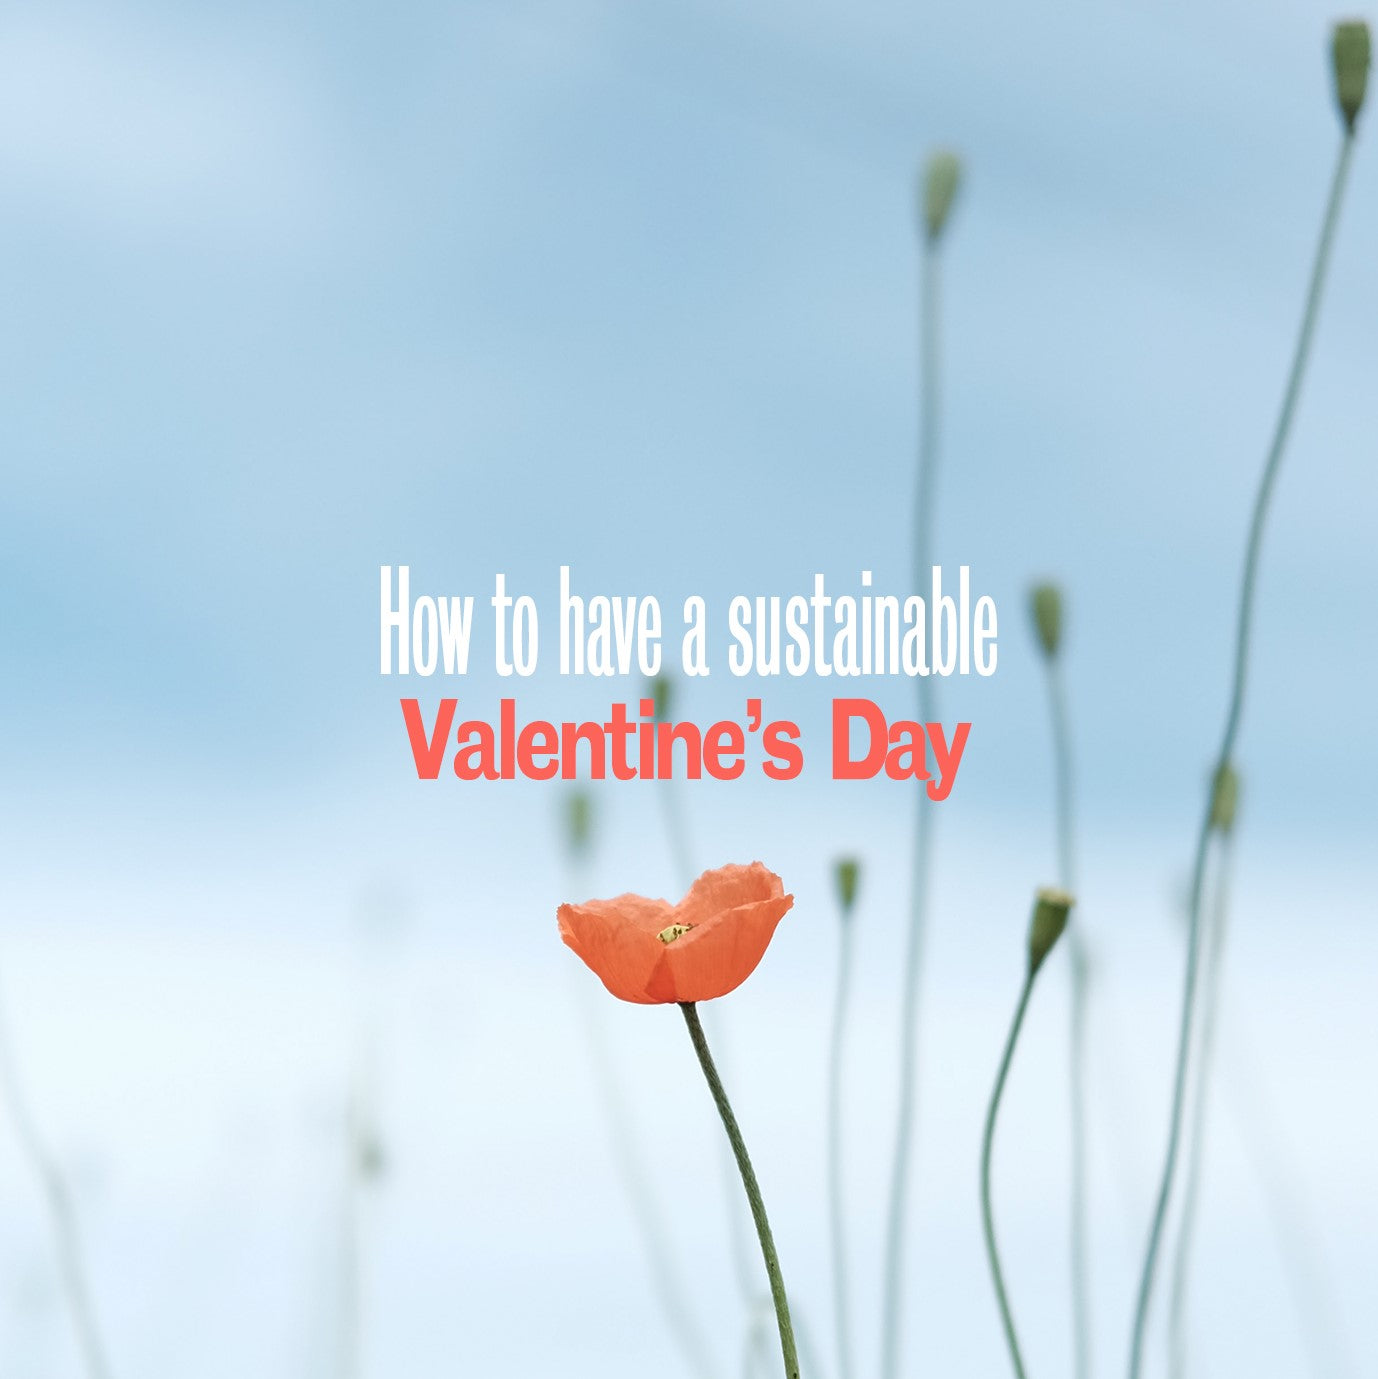 How to have a sustainable Valentine's Day